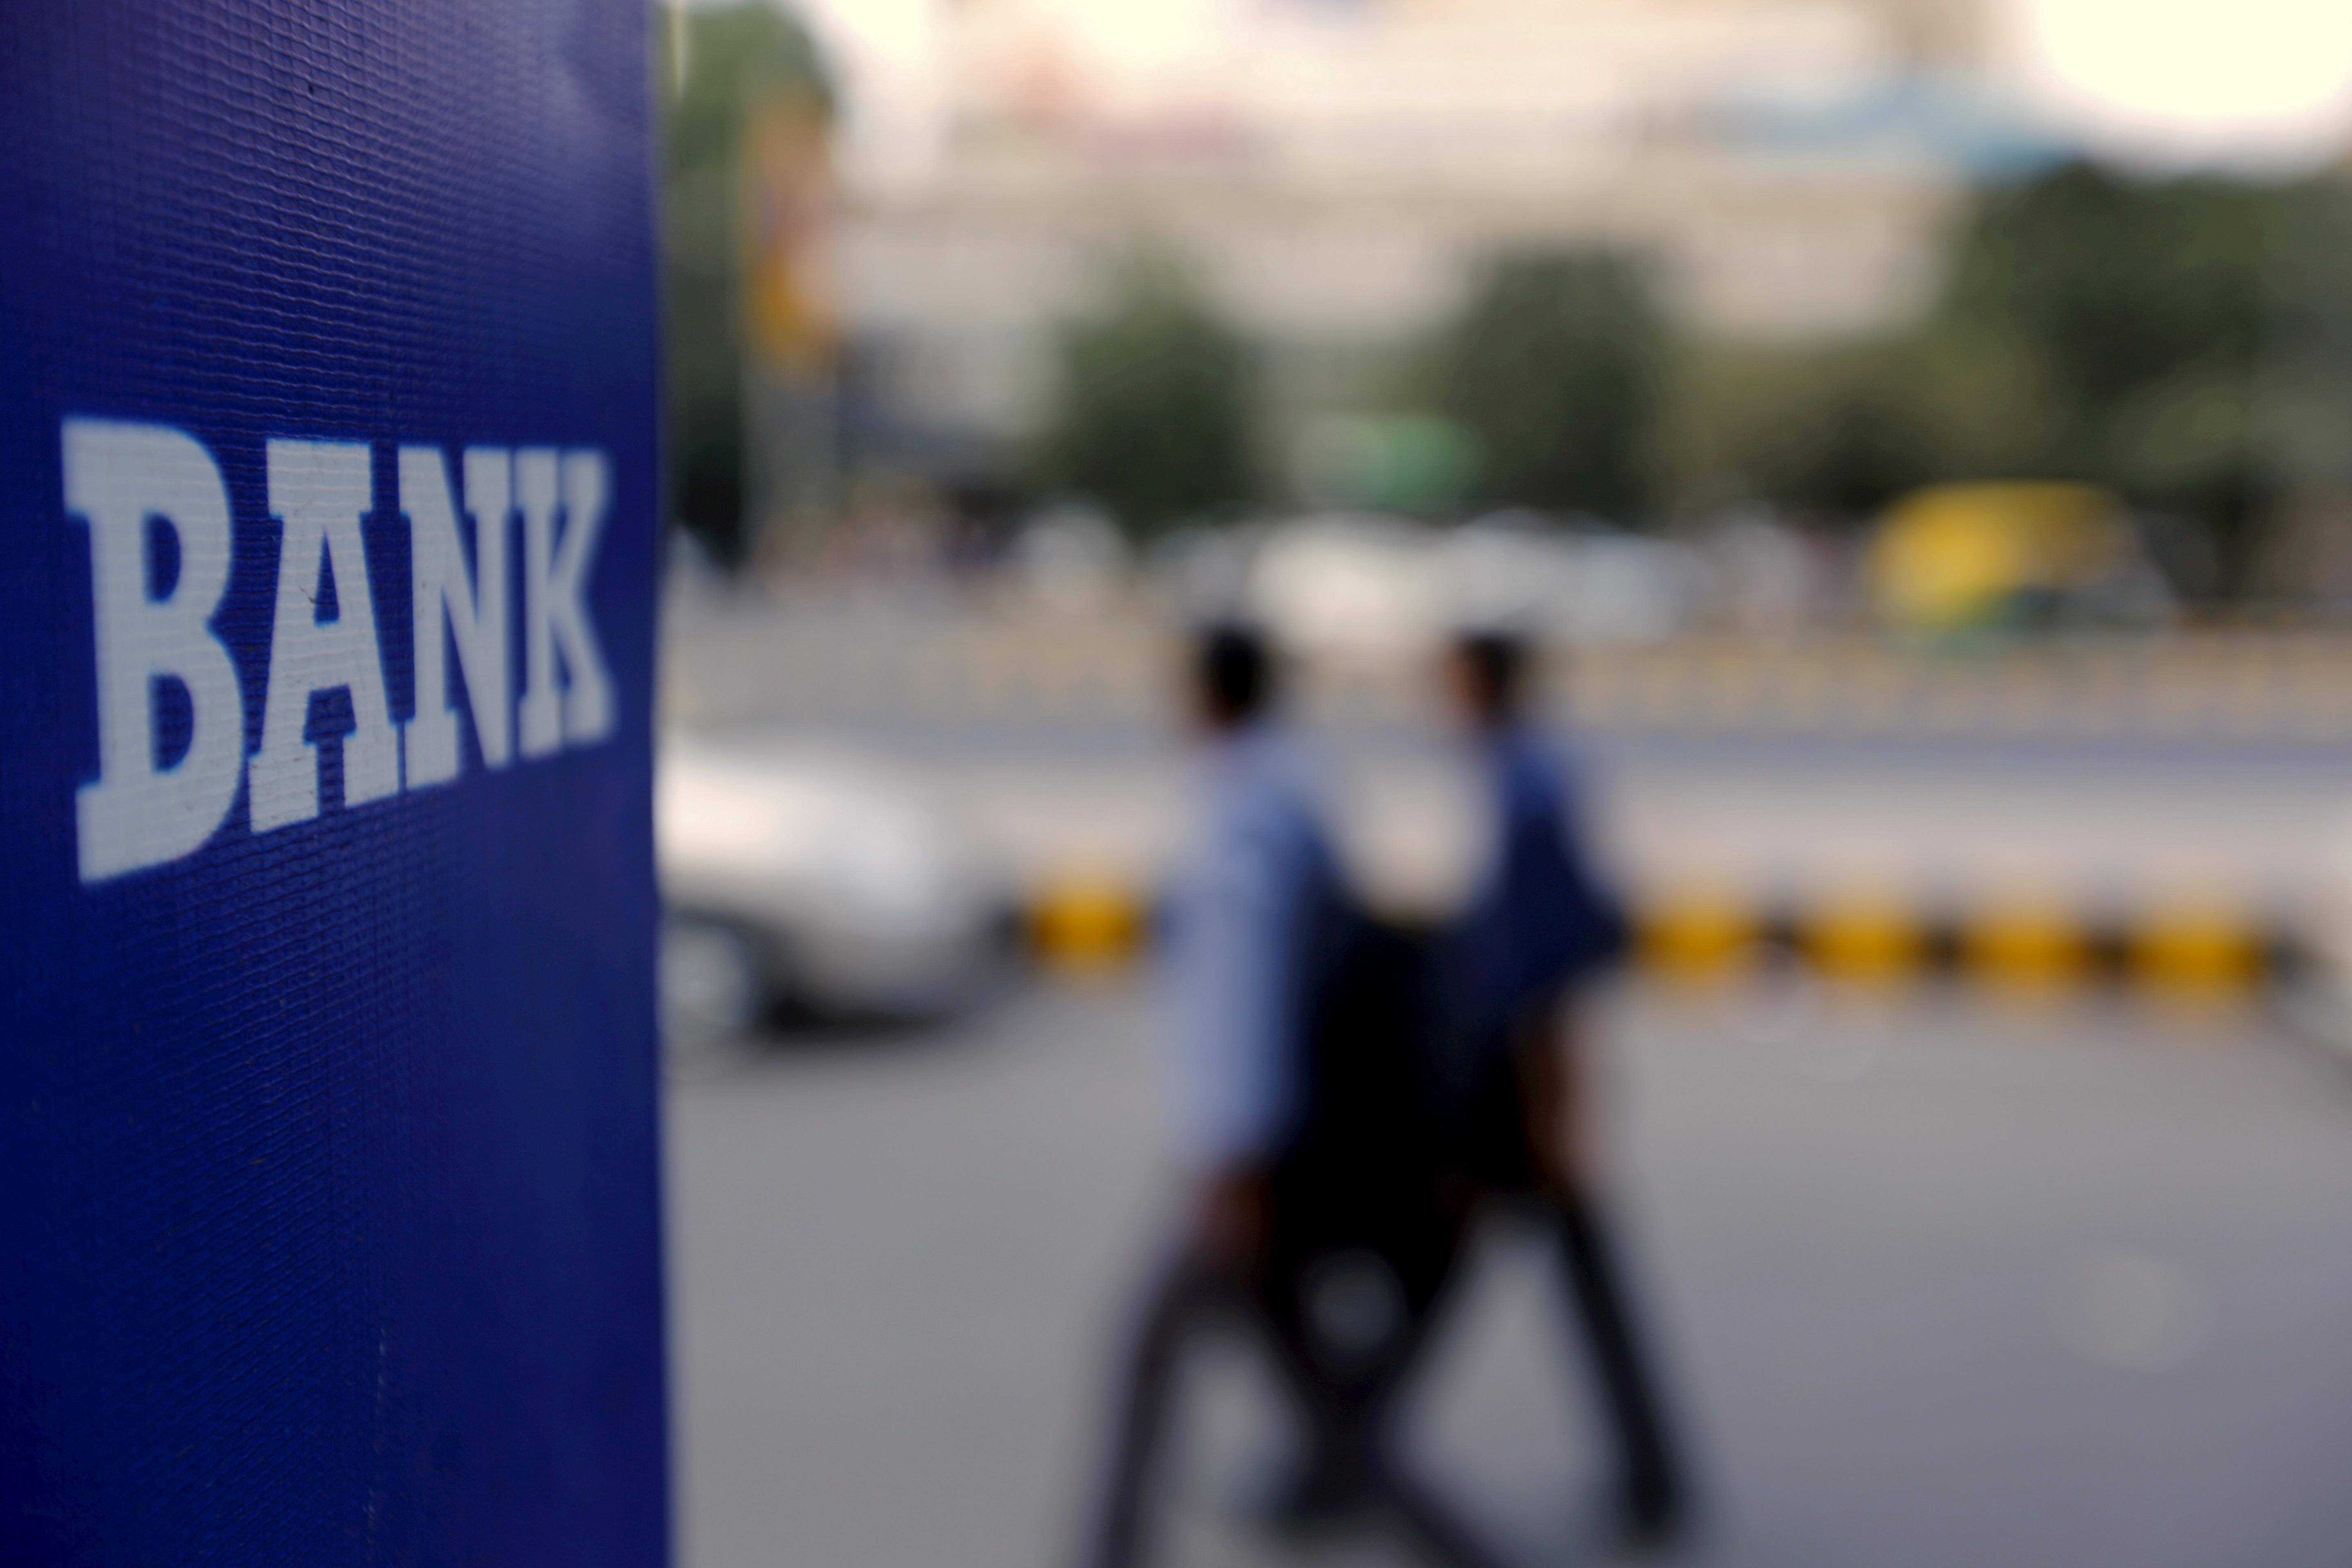 State-run banks jump after government announces fund infusion